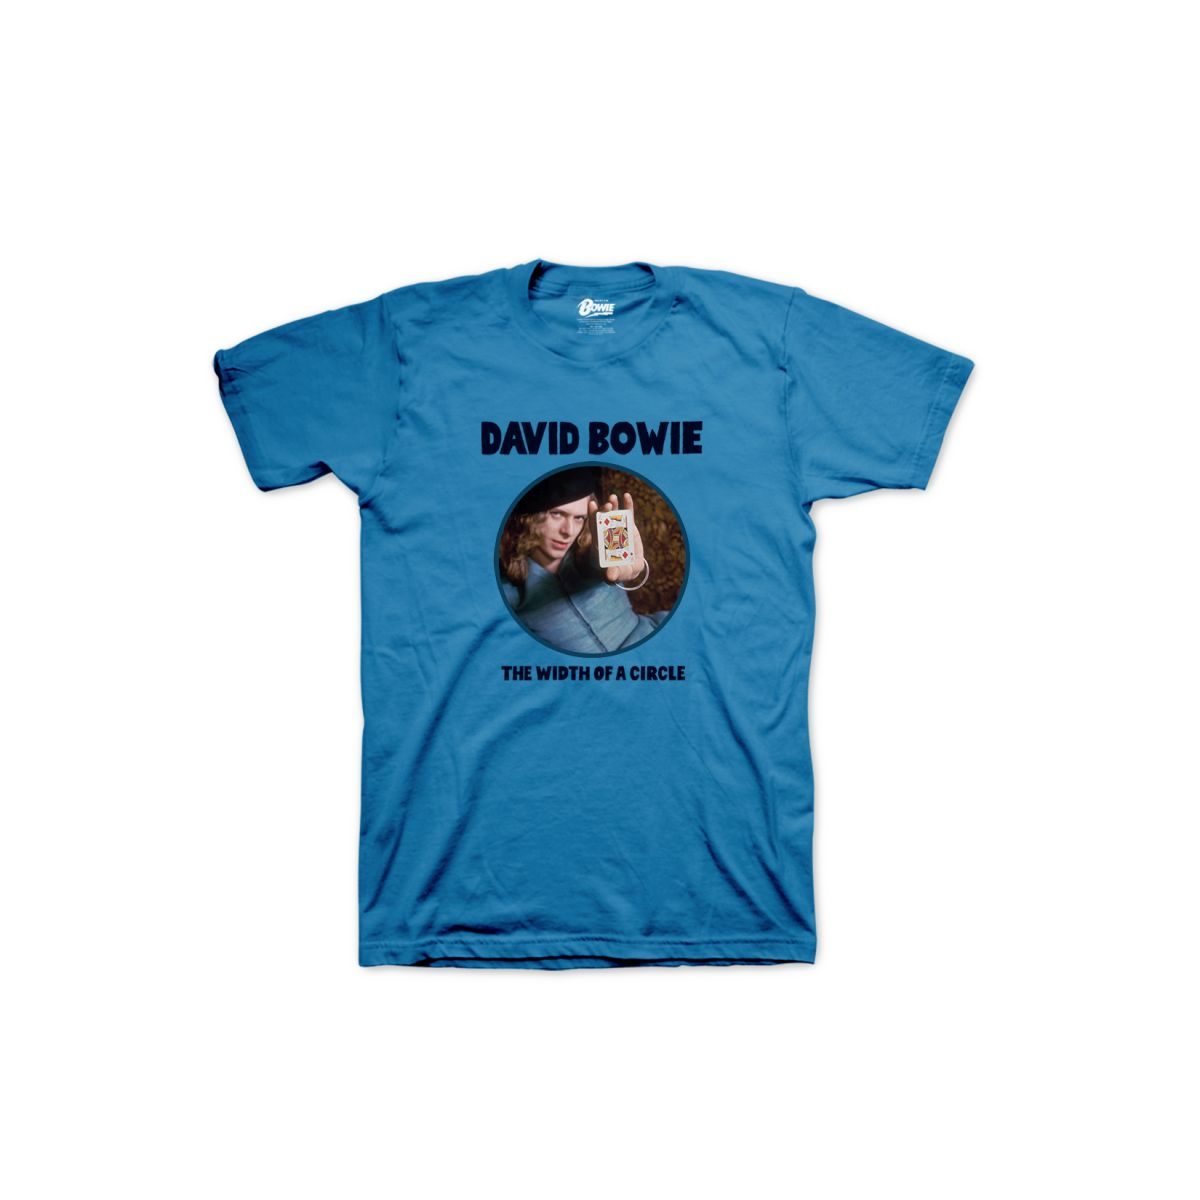 David Bowie The Width of a Circle T-Shirt